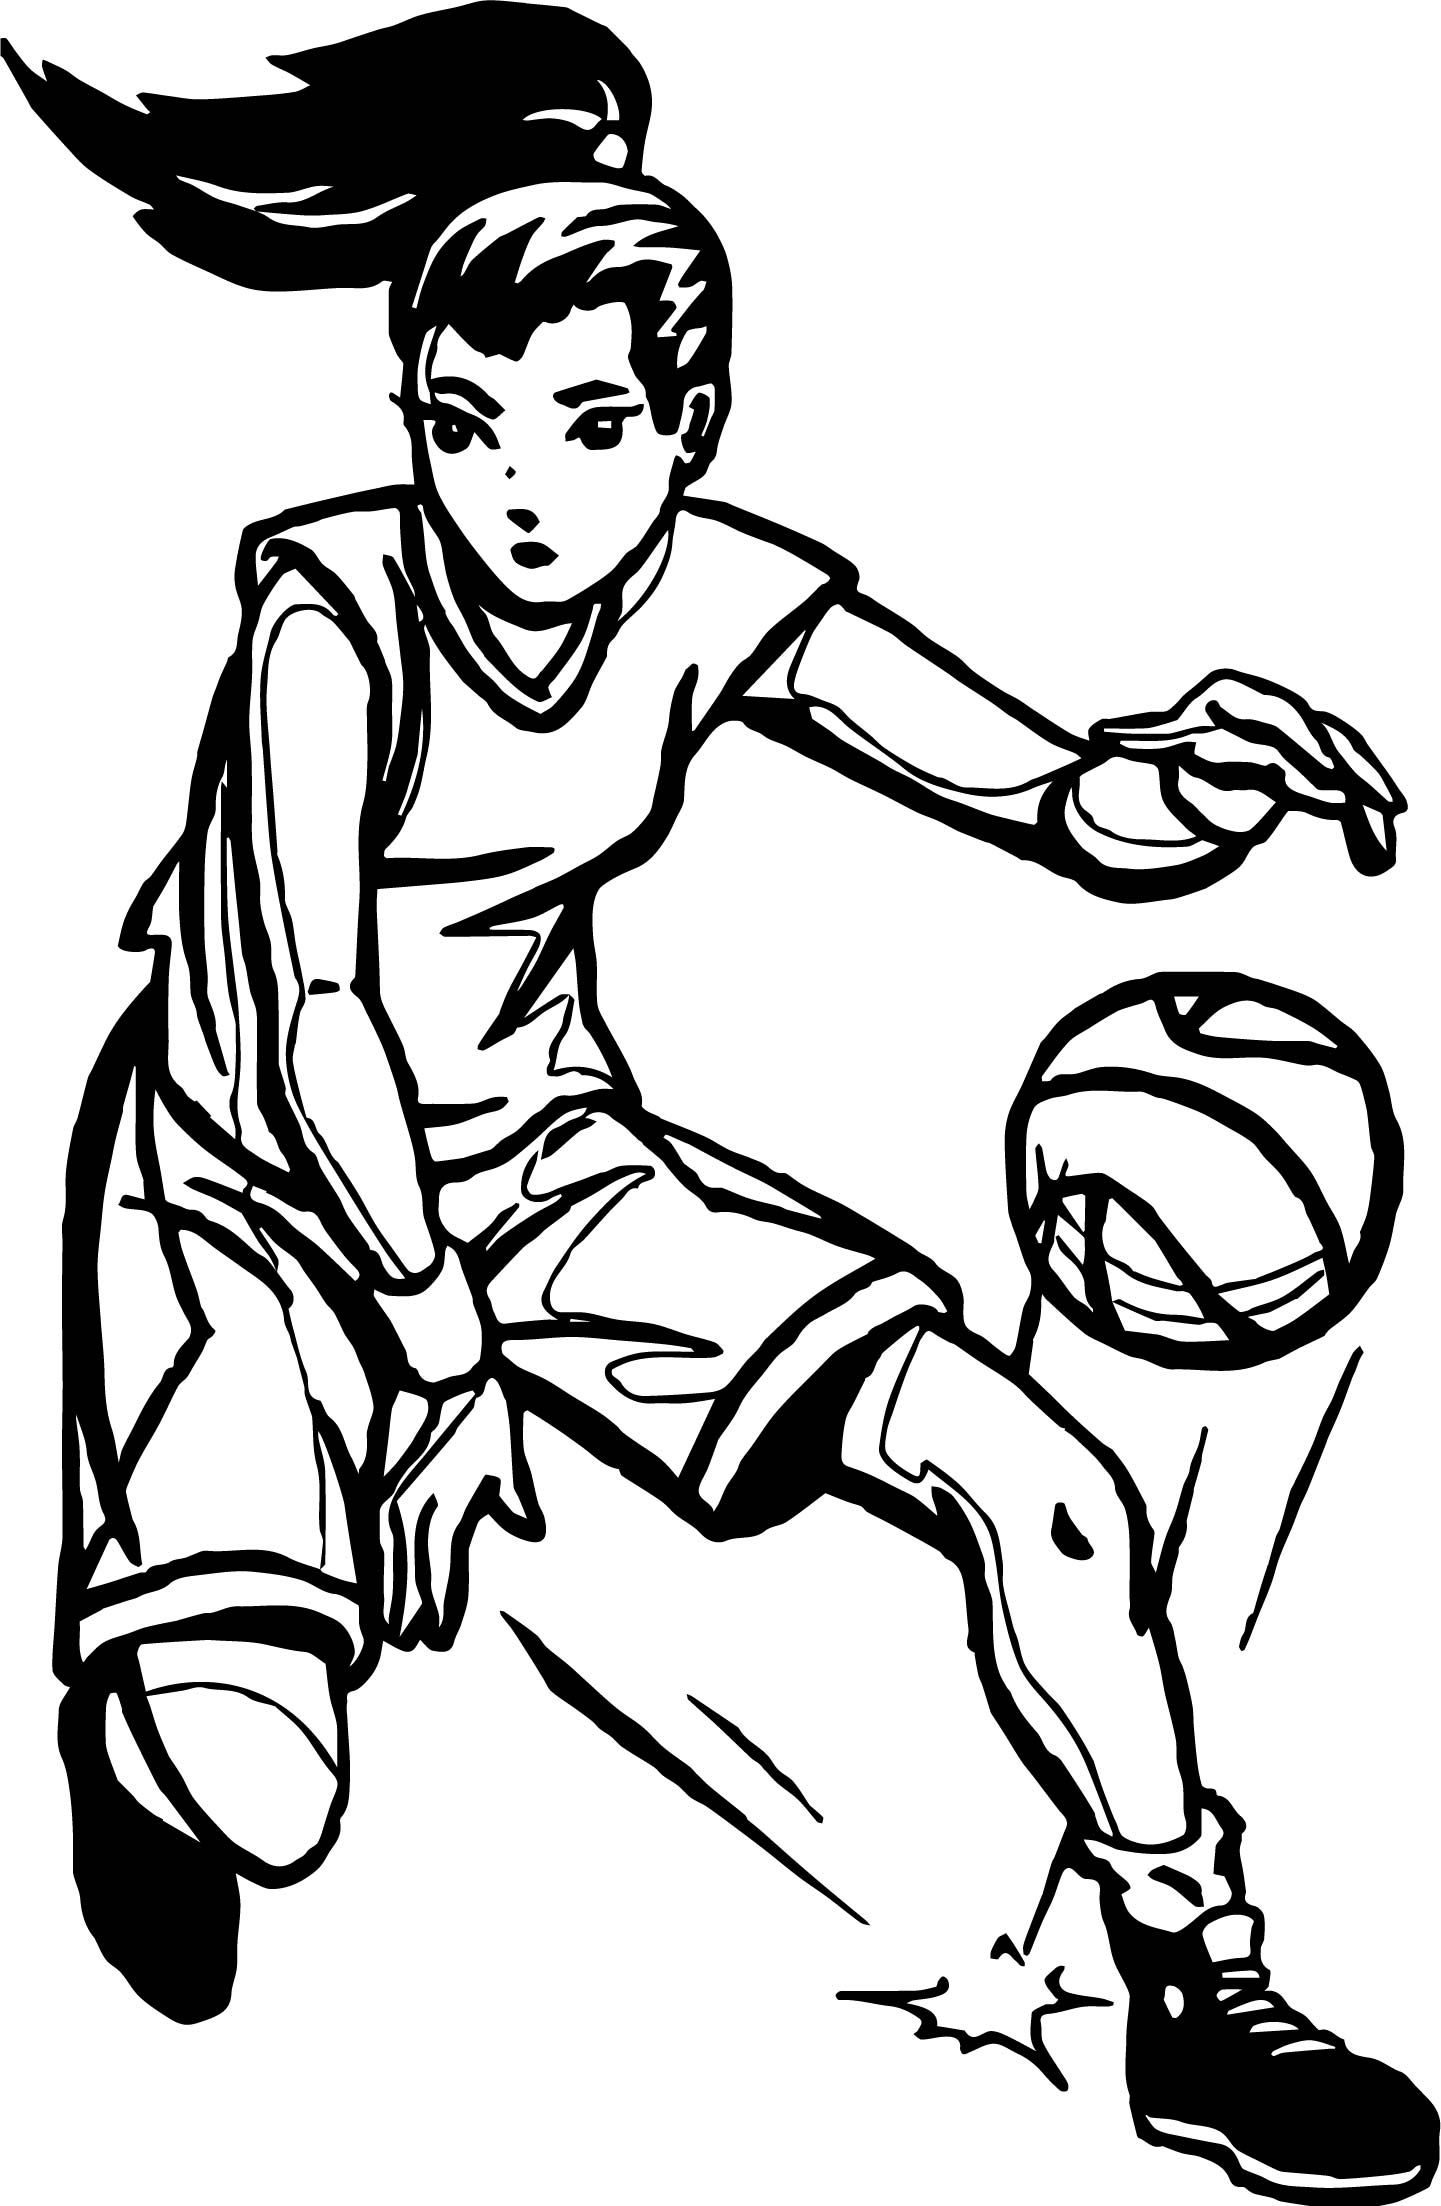 Awesome Girl Player Playing Basketball Coloring Page Sports Coloring Pages Coloring Pages Coloring Pages Inspirational